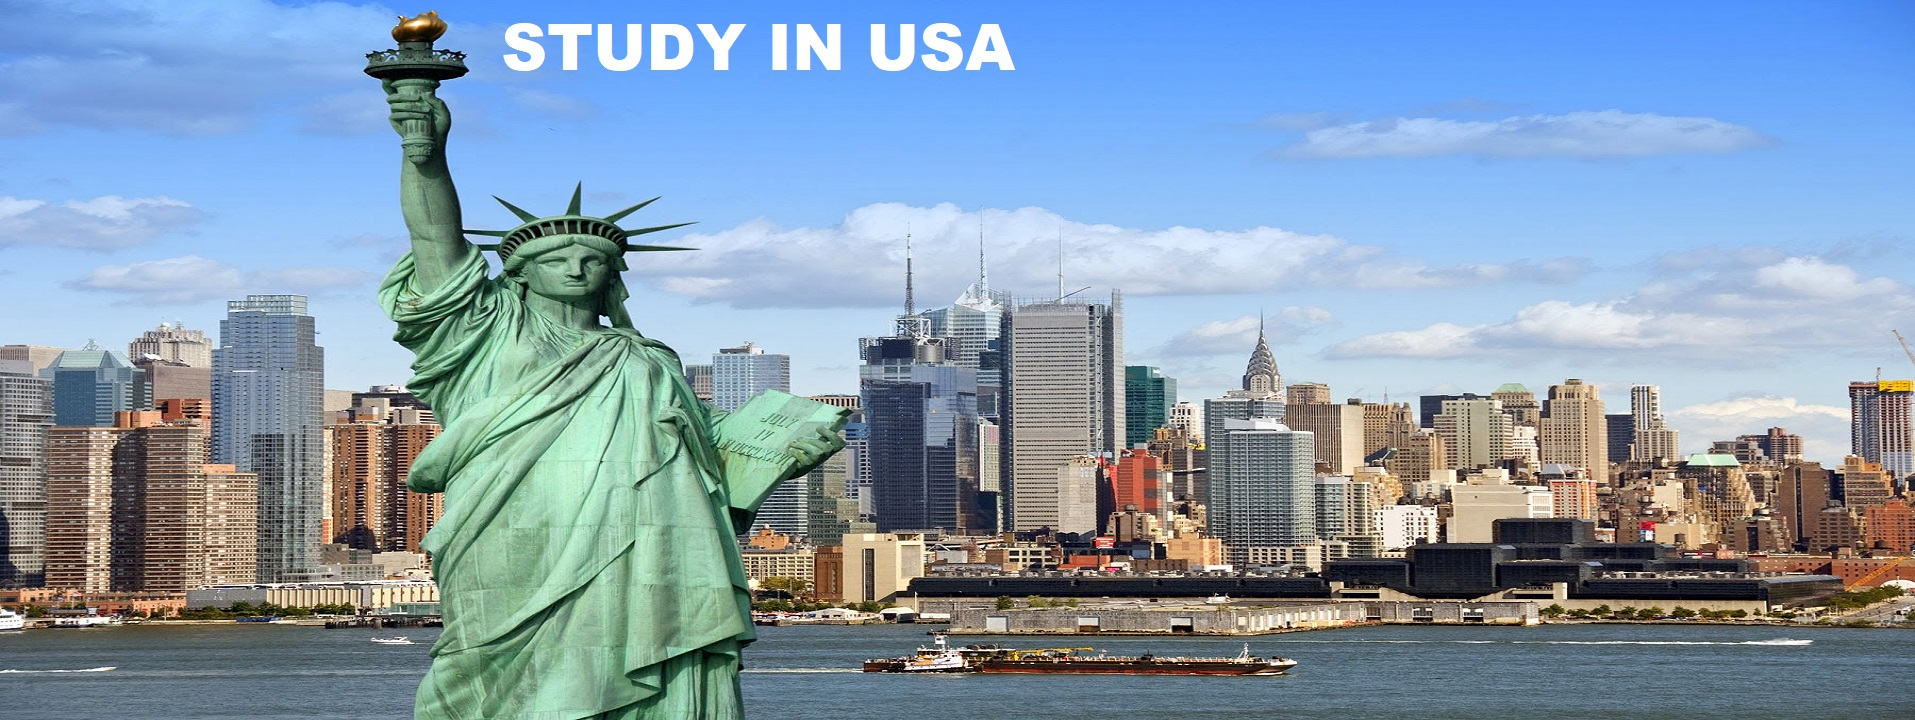 Study in the United States of America | Study in USA for Indian Students | study in usa with scholarship | study in usa cost | study in usa from india